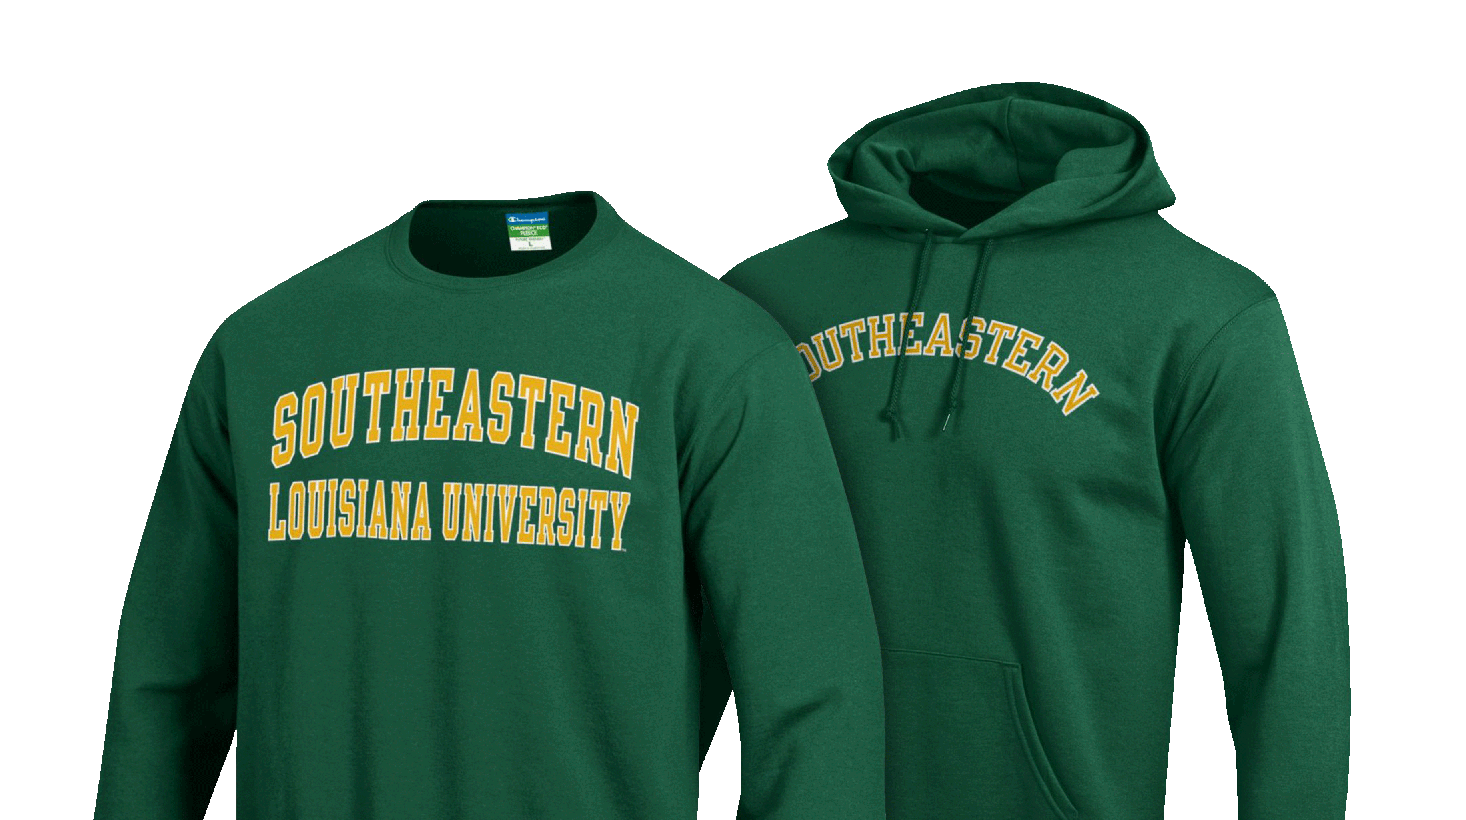 5da1f09c9 Southeastern Louisiana University Bookstore Apparel, Merchandise ...